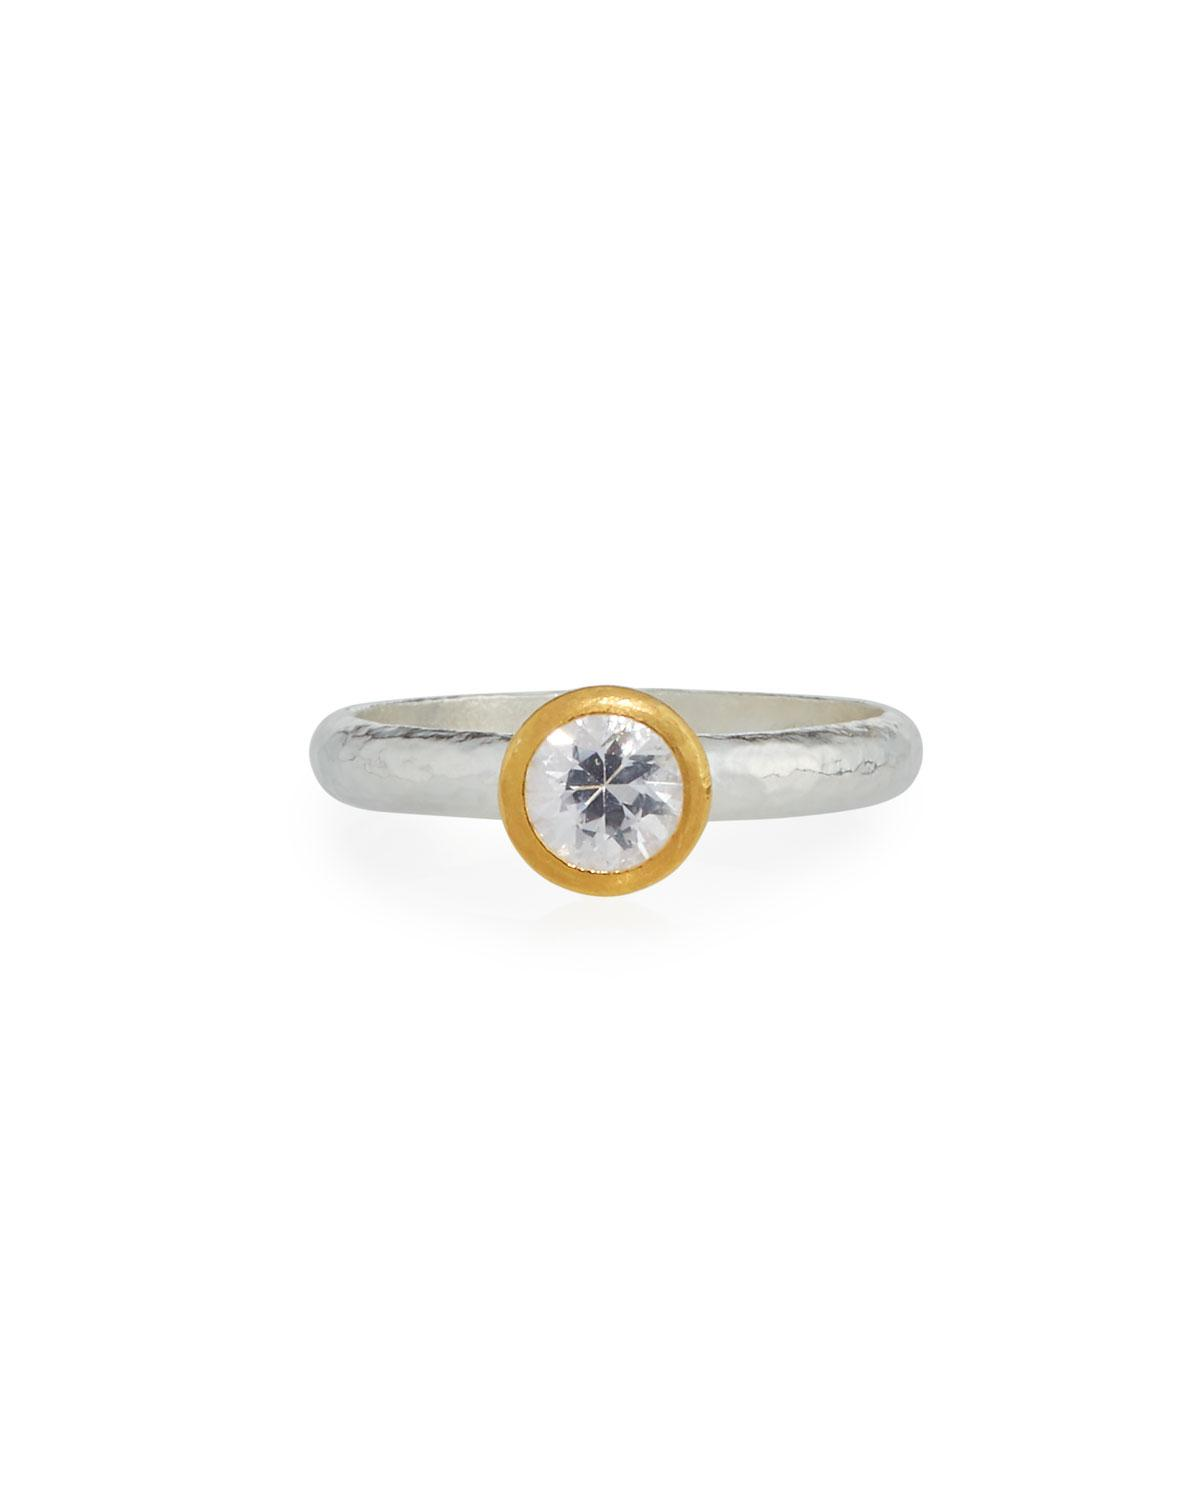 Gurhan Delicate Skittle Ring with Bezel-Set White Sapphire, Size 6